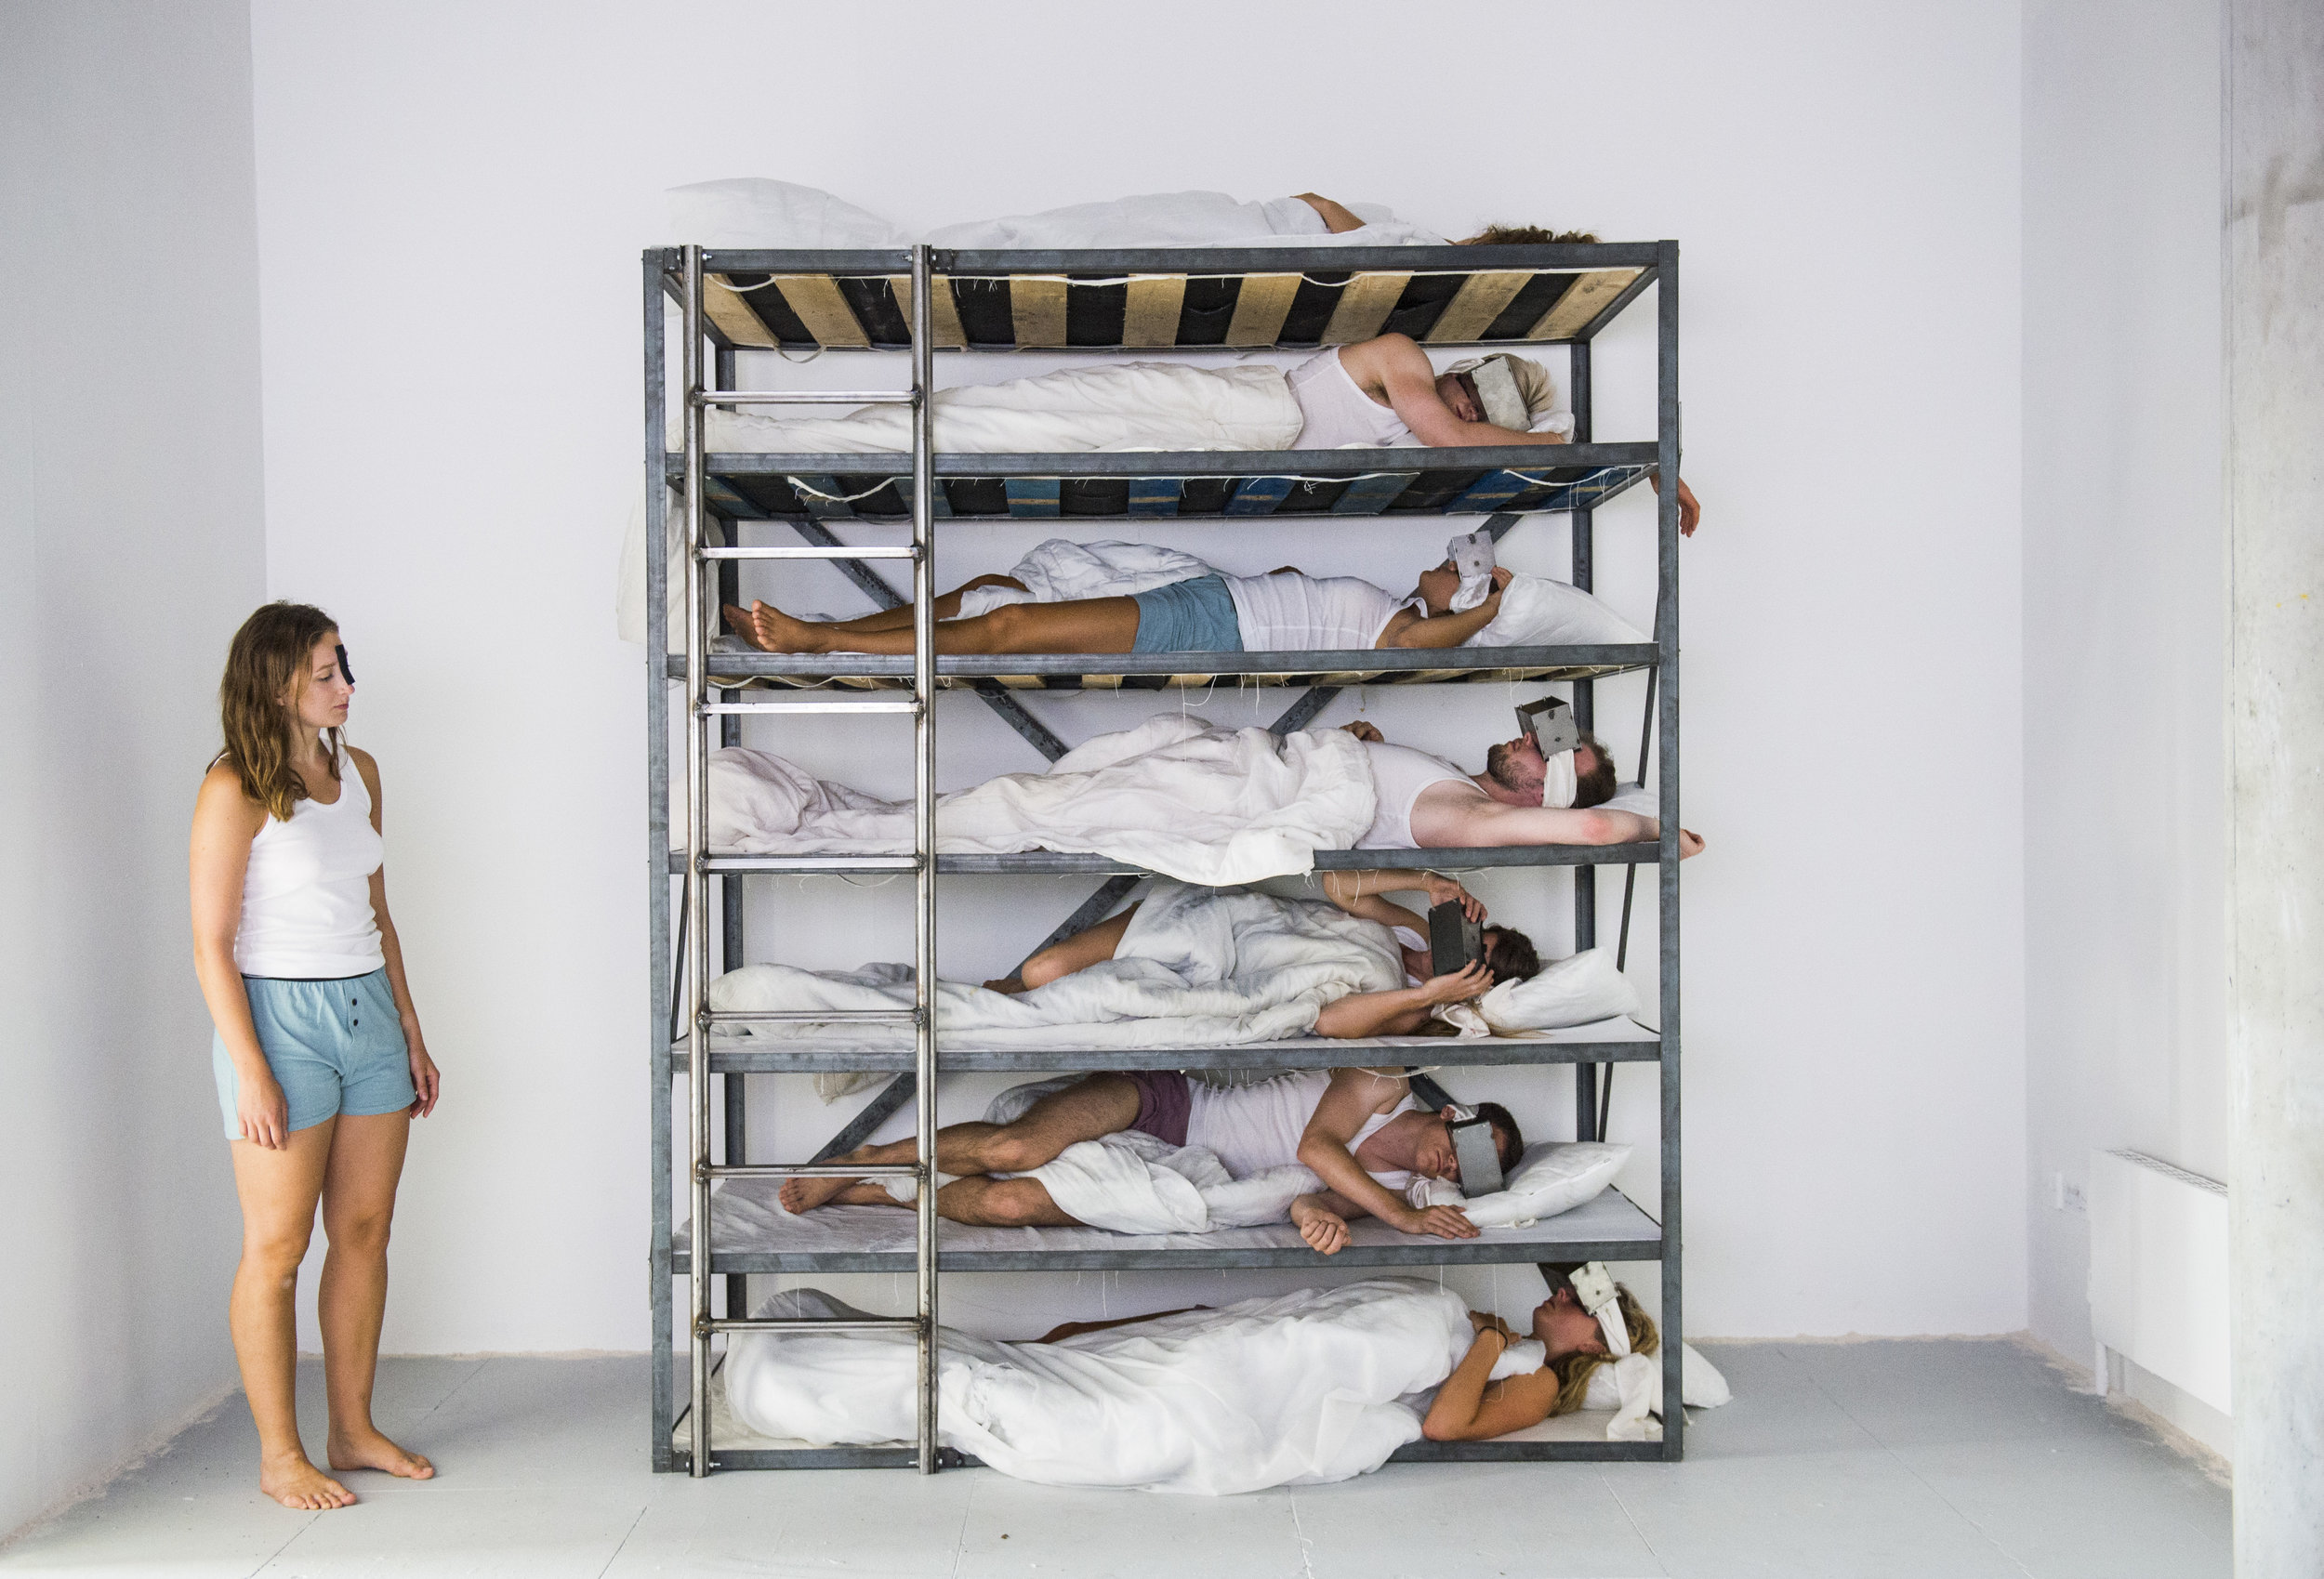 Bedroom, London, 2025  installation including tableau vivant with occasional movement  Goldsmiths MFA Degree Show, 2018  Photograph by Lucy Young